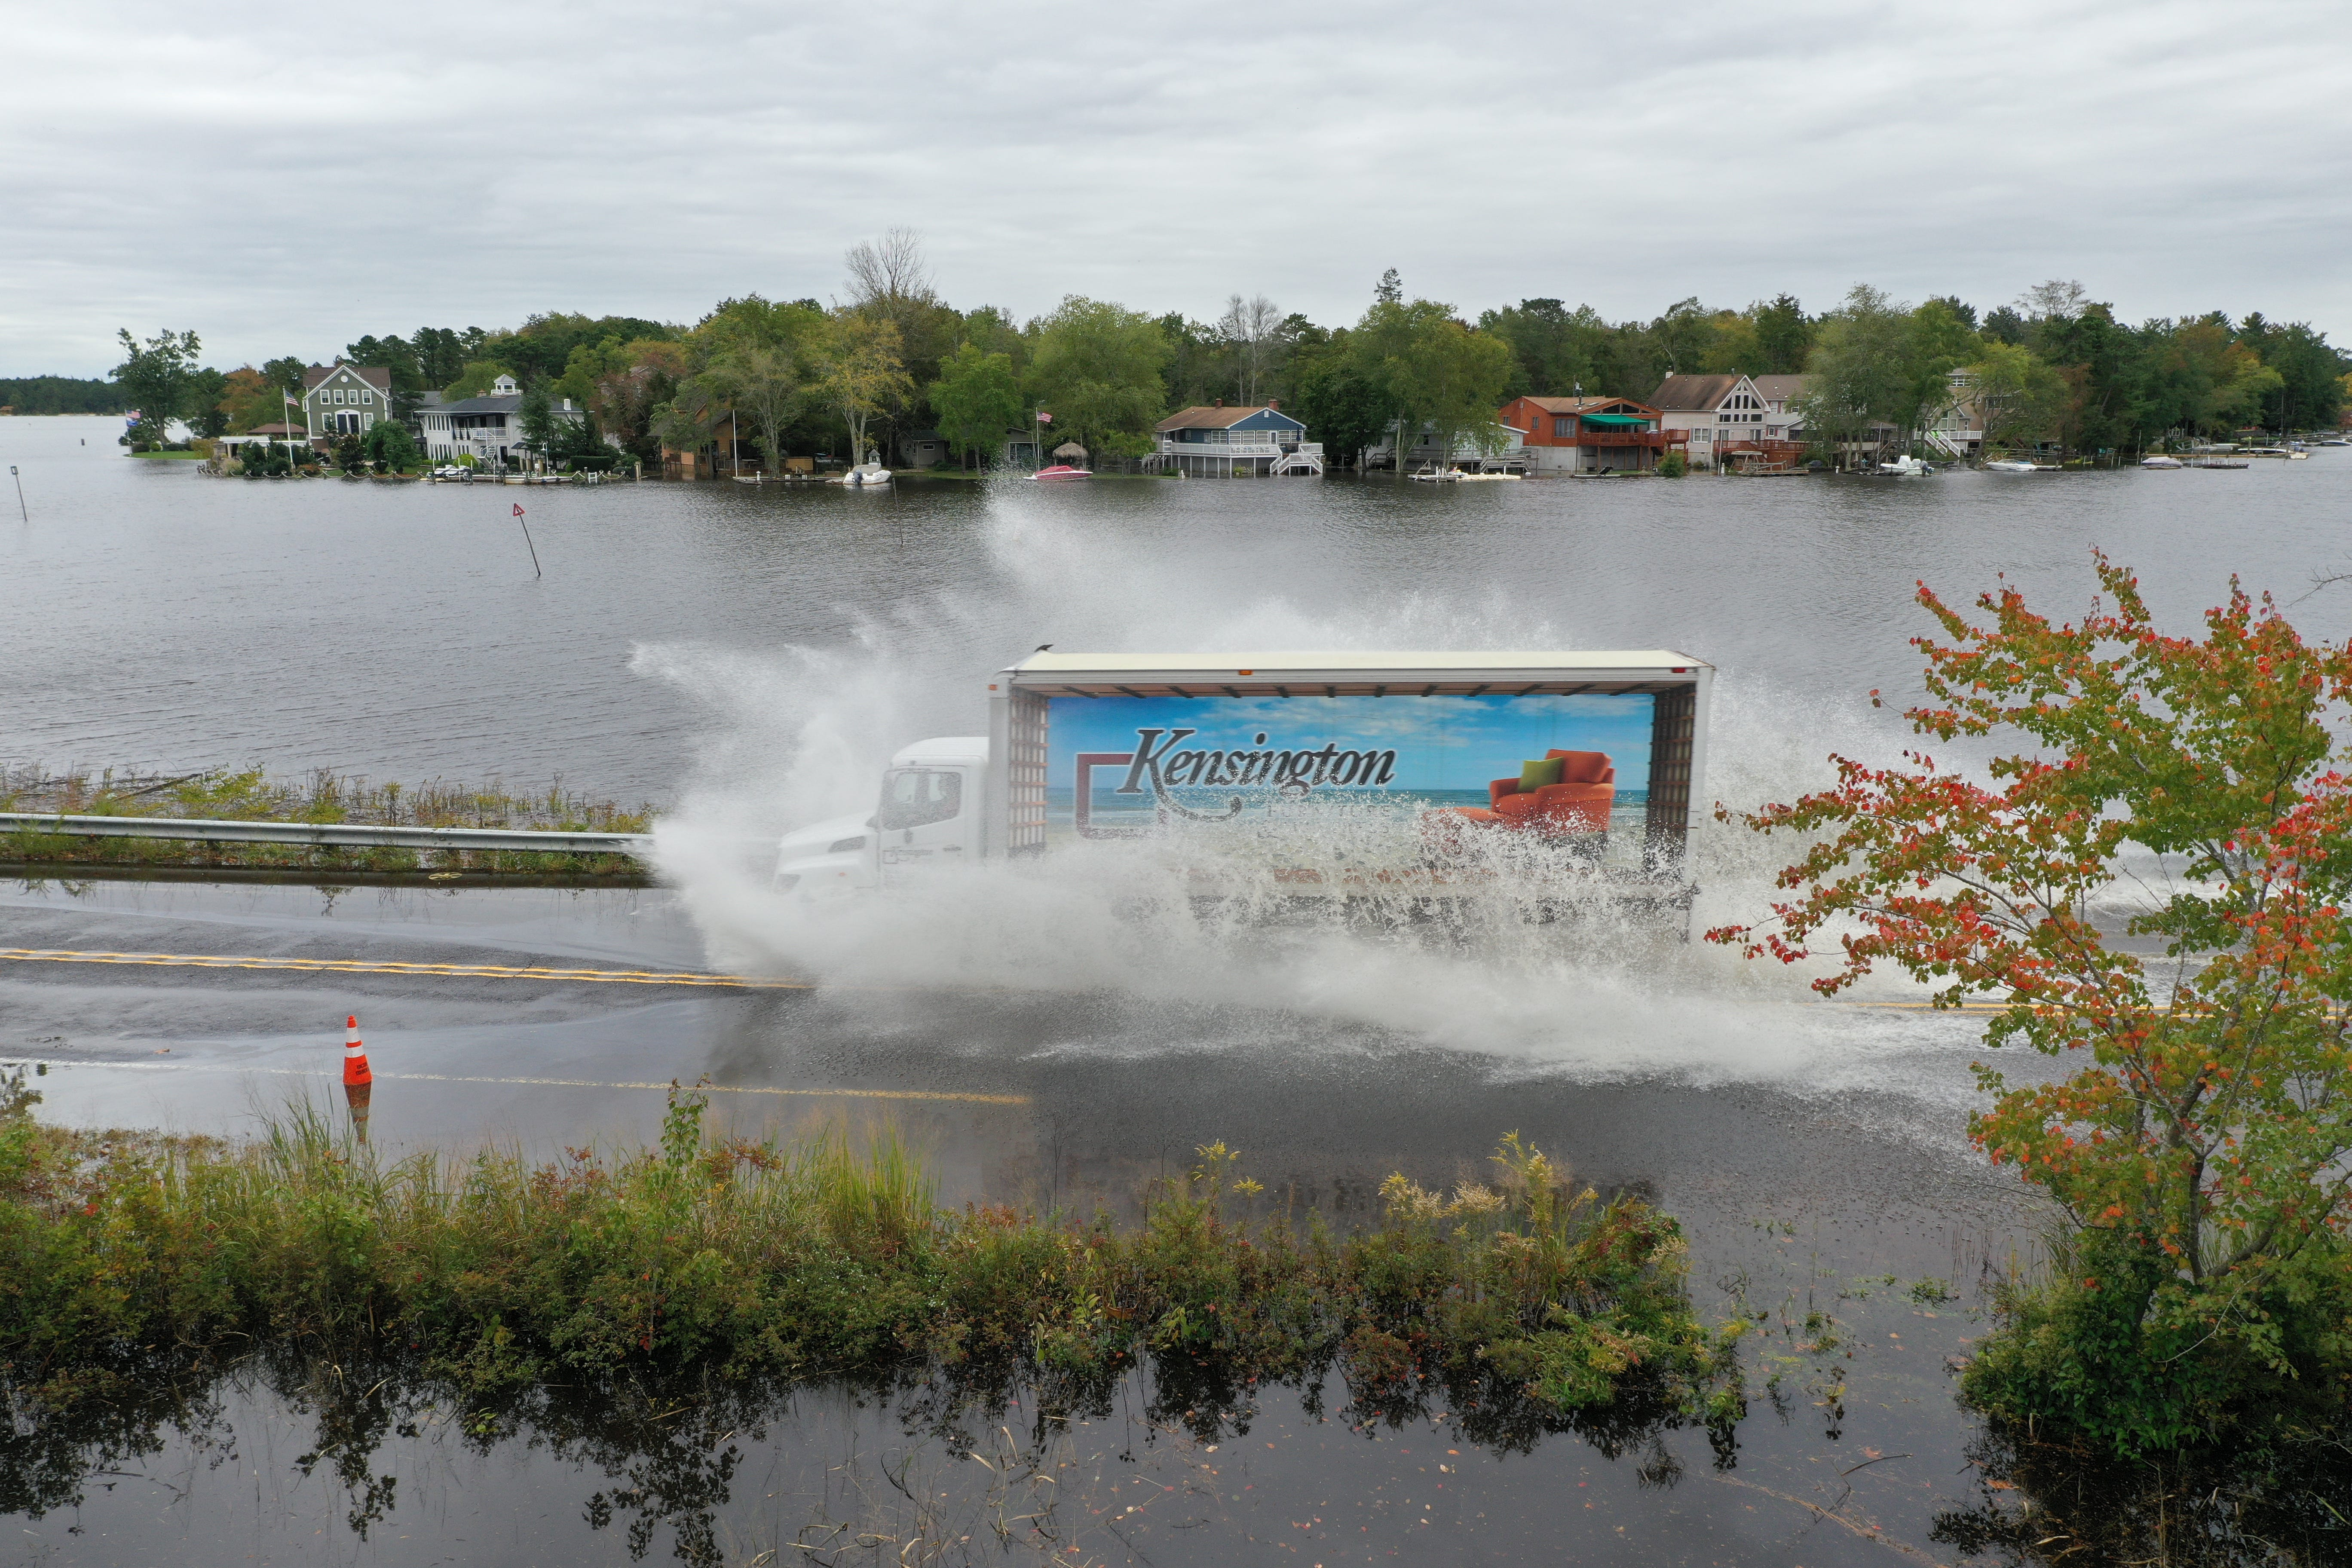 A truck navigates a flooded road during a king tide in October 2019 along the Mullica River in Southeastern New Jersey. NOAA records show coastal flooding is occurring more often as sea levels rise, especially during lunar high tides in the fall. [Photos by Life on the Edge Drones, provided by Jacques Cousteau National Estuarine Research Reserve]